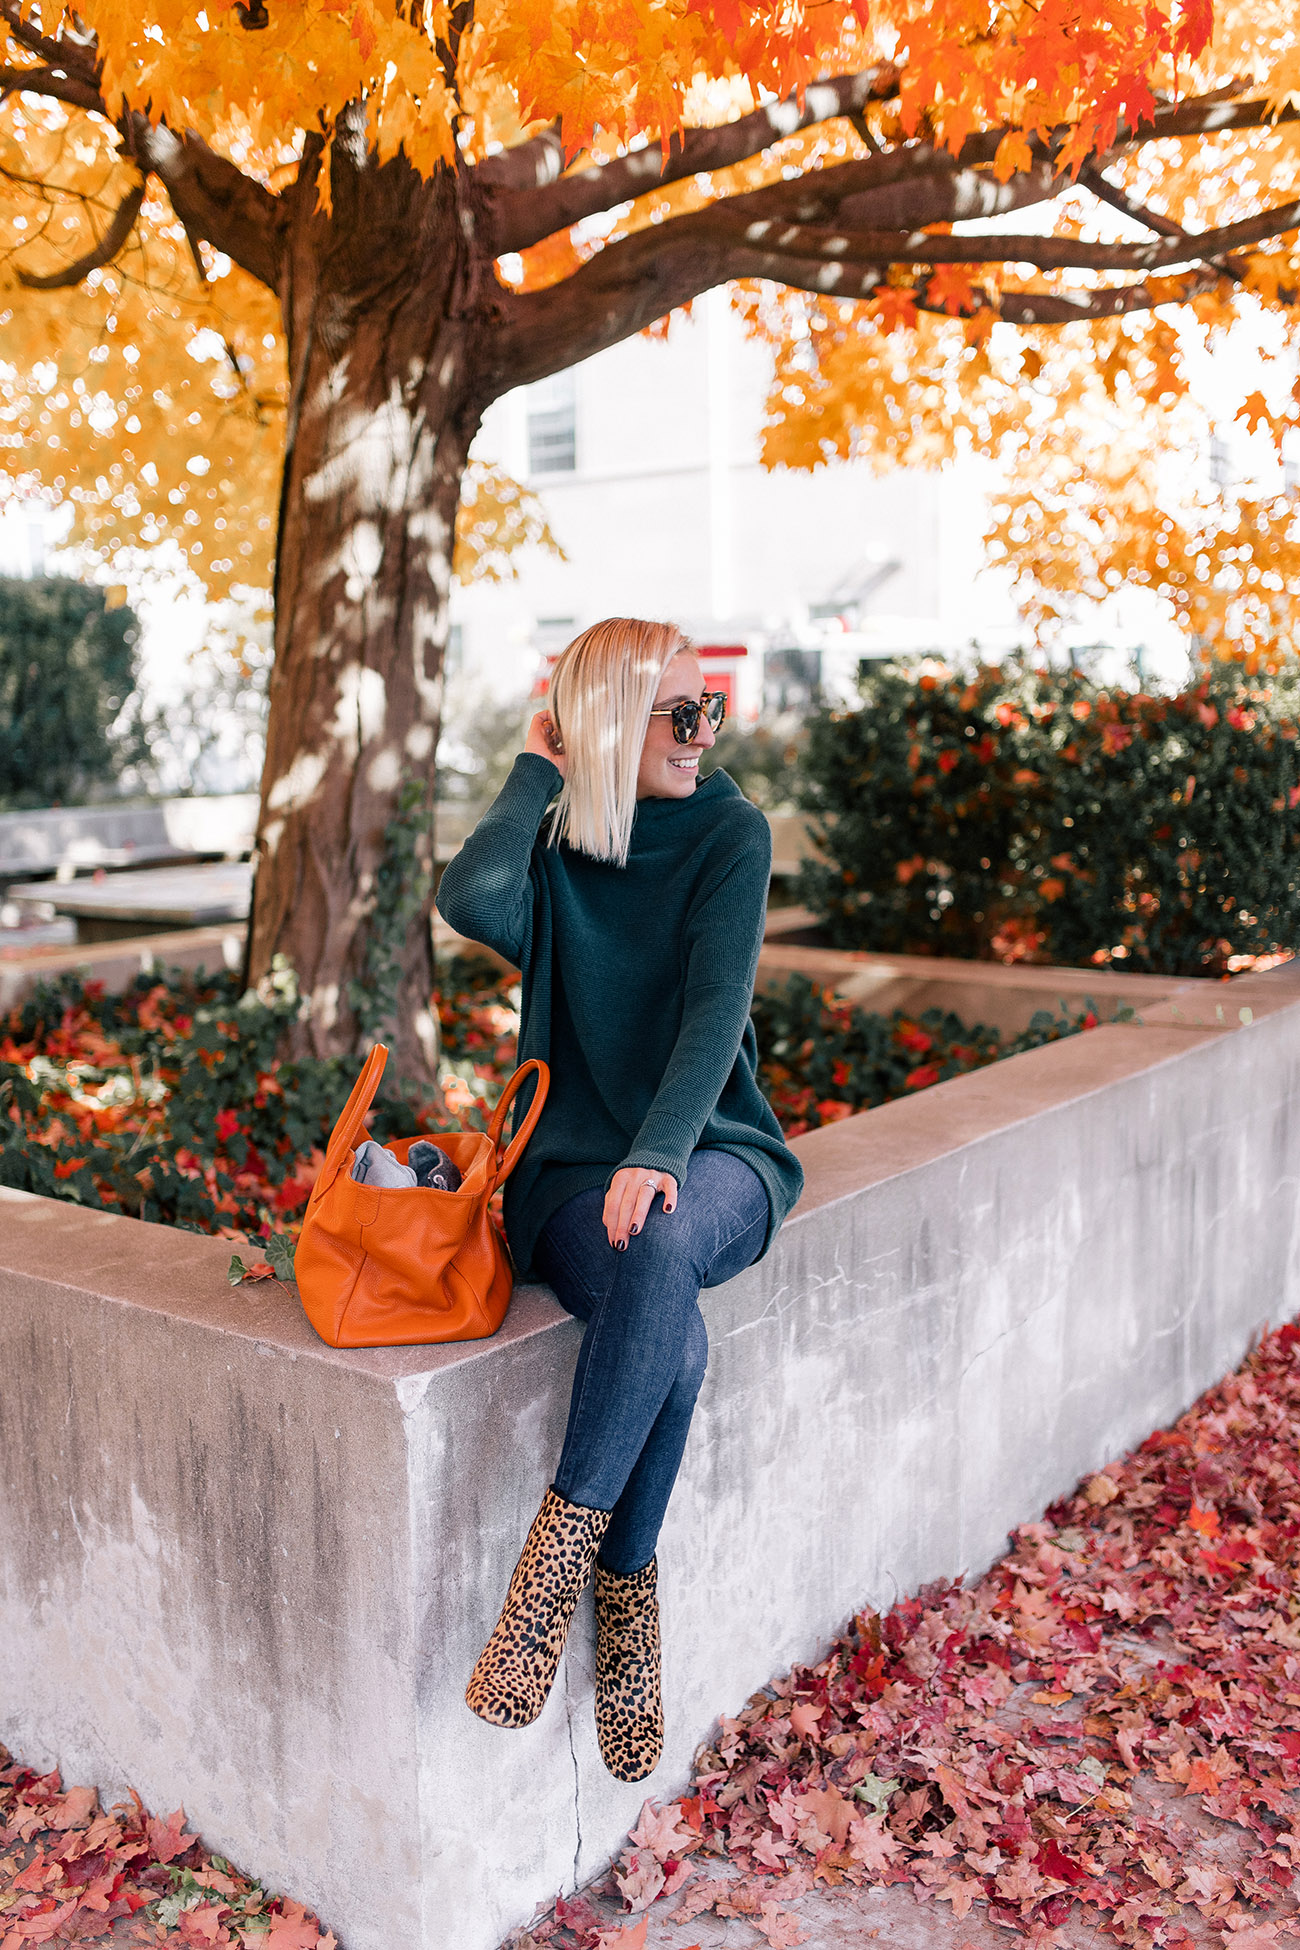 76405f24d7b4 Sweater   Jeans c o   Booties c o   Bag. Photos by Carter Fish. The post  Shopping My Closet  Outfit 4 appeared first ...